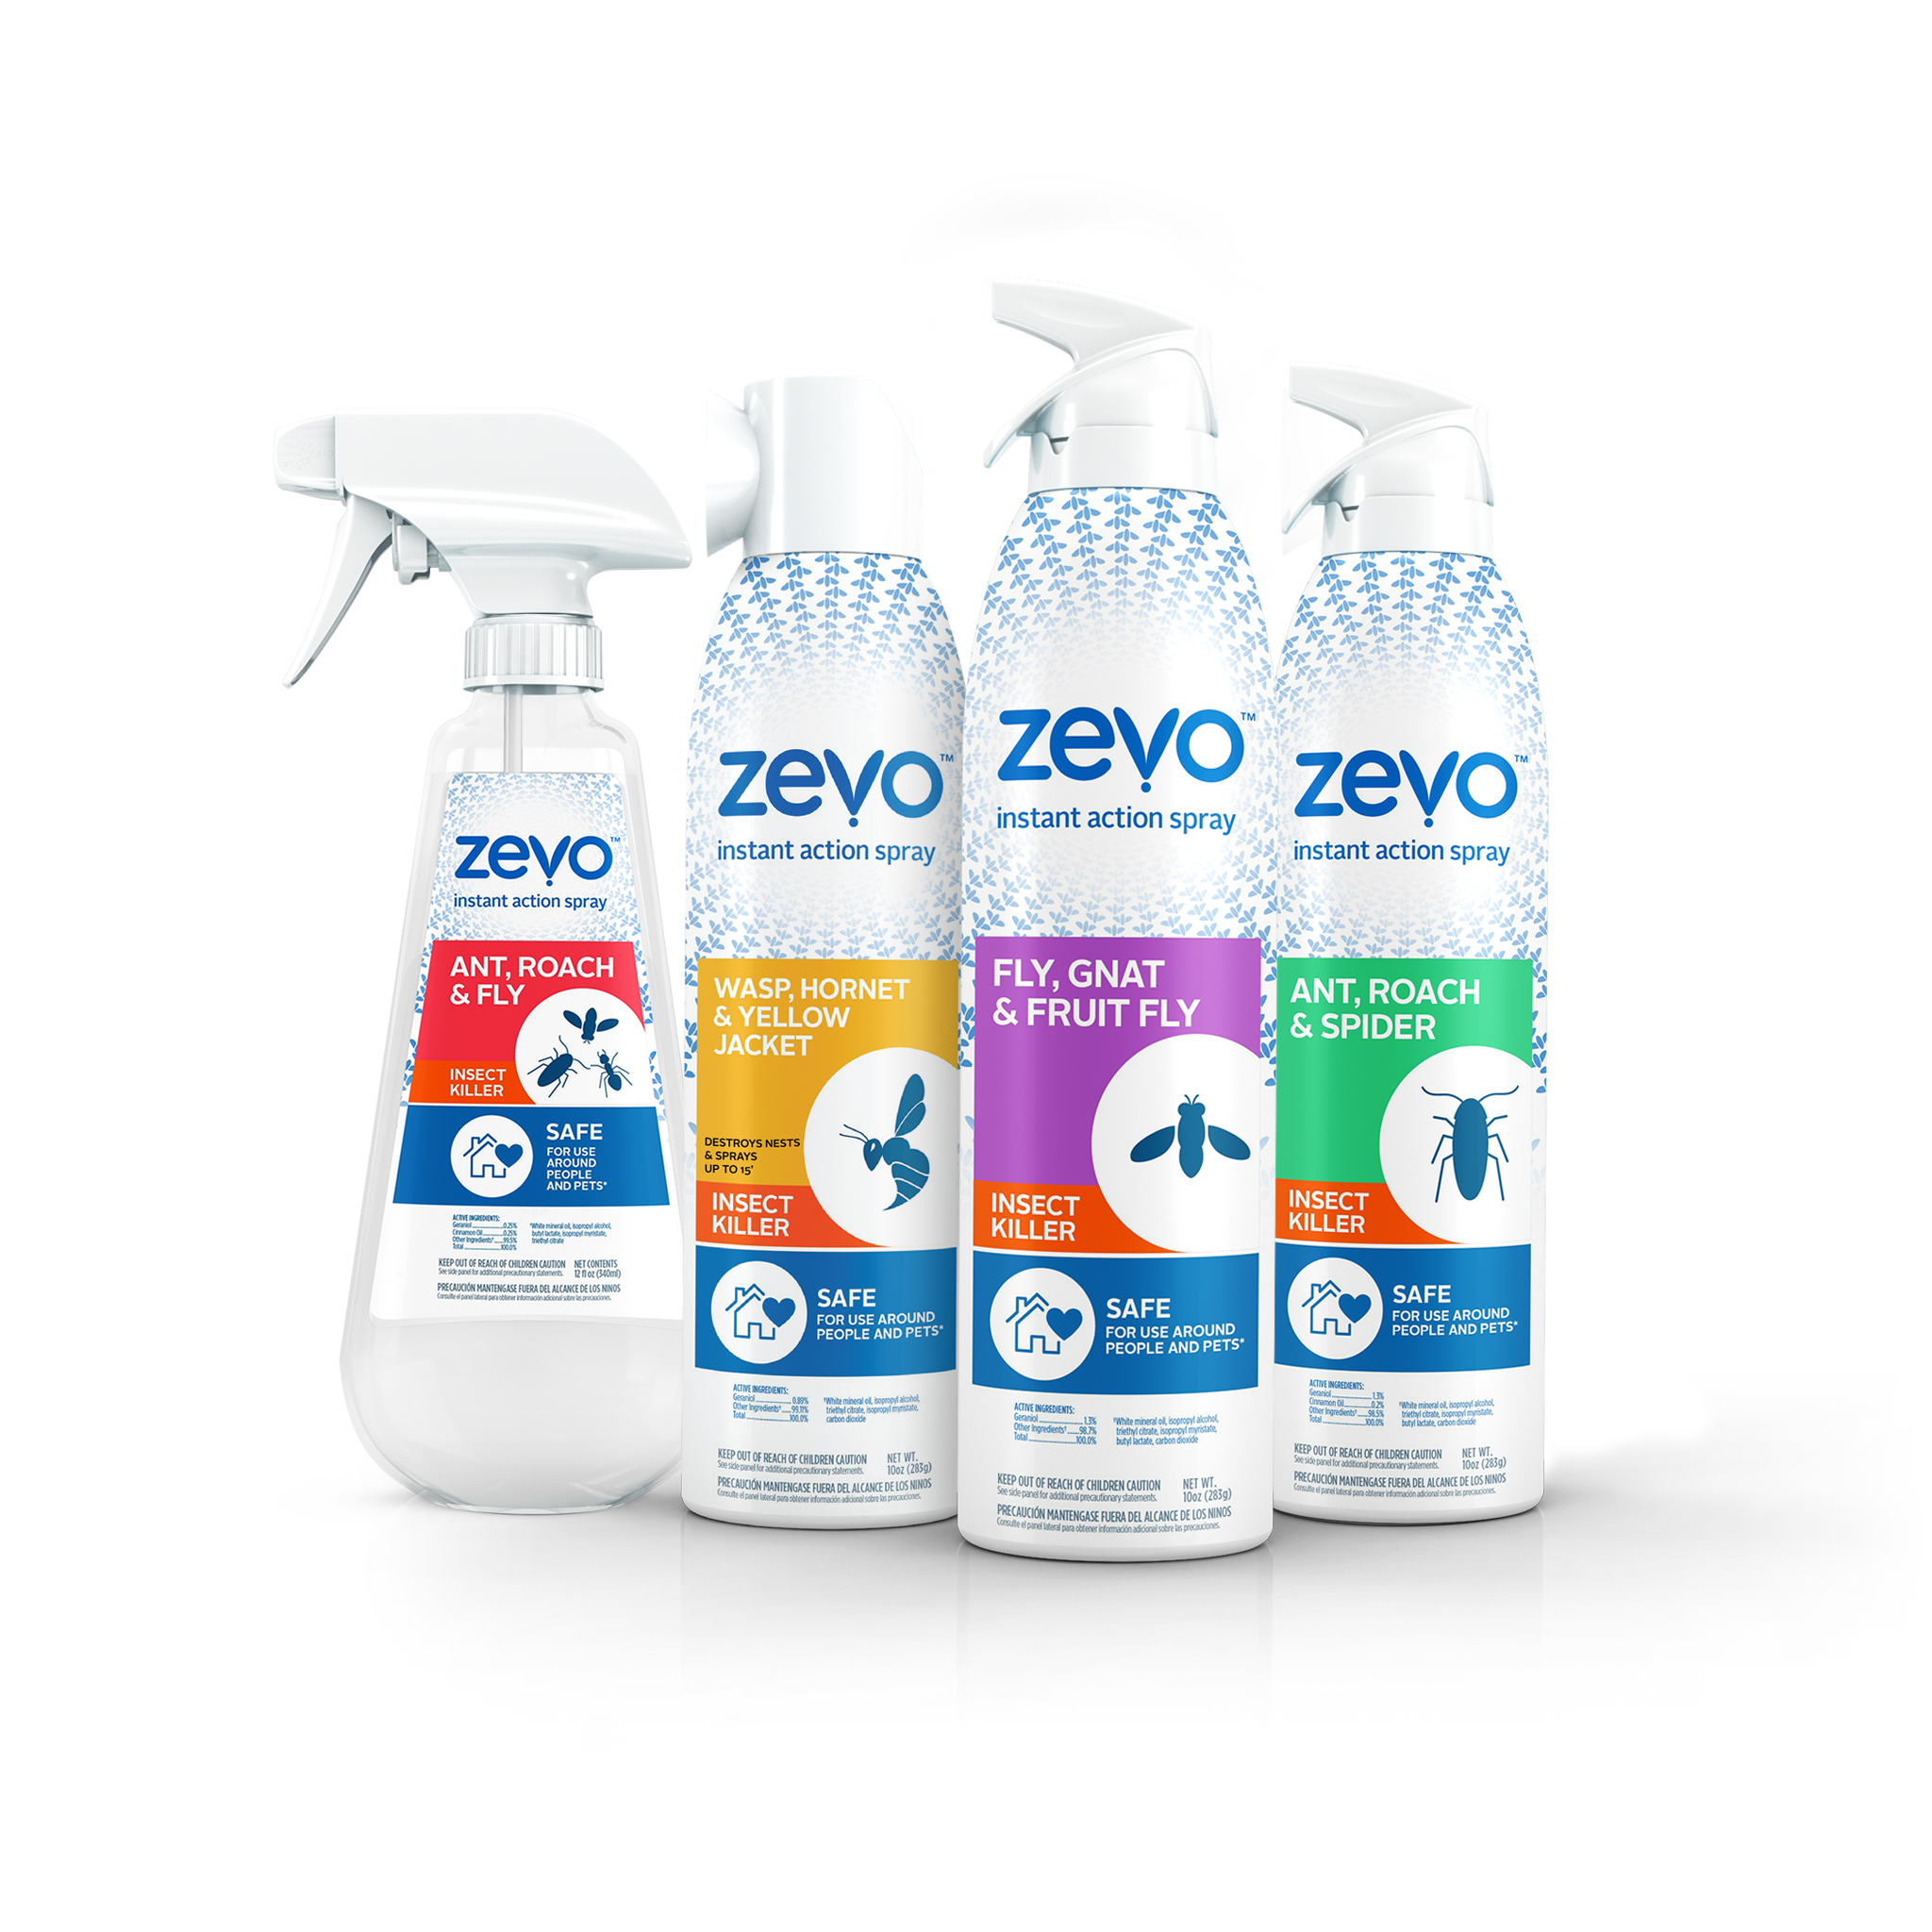 Zevo flying insect sprays